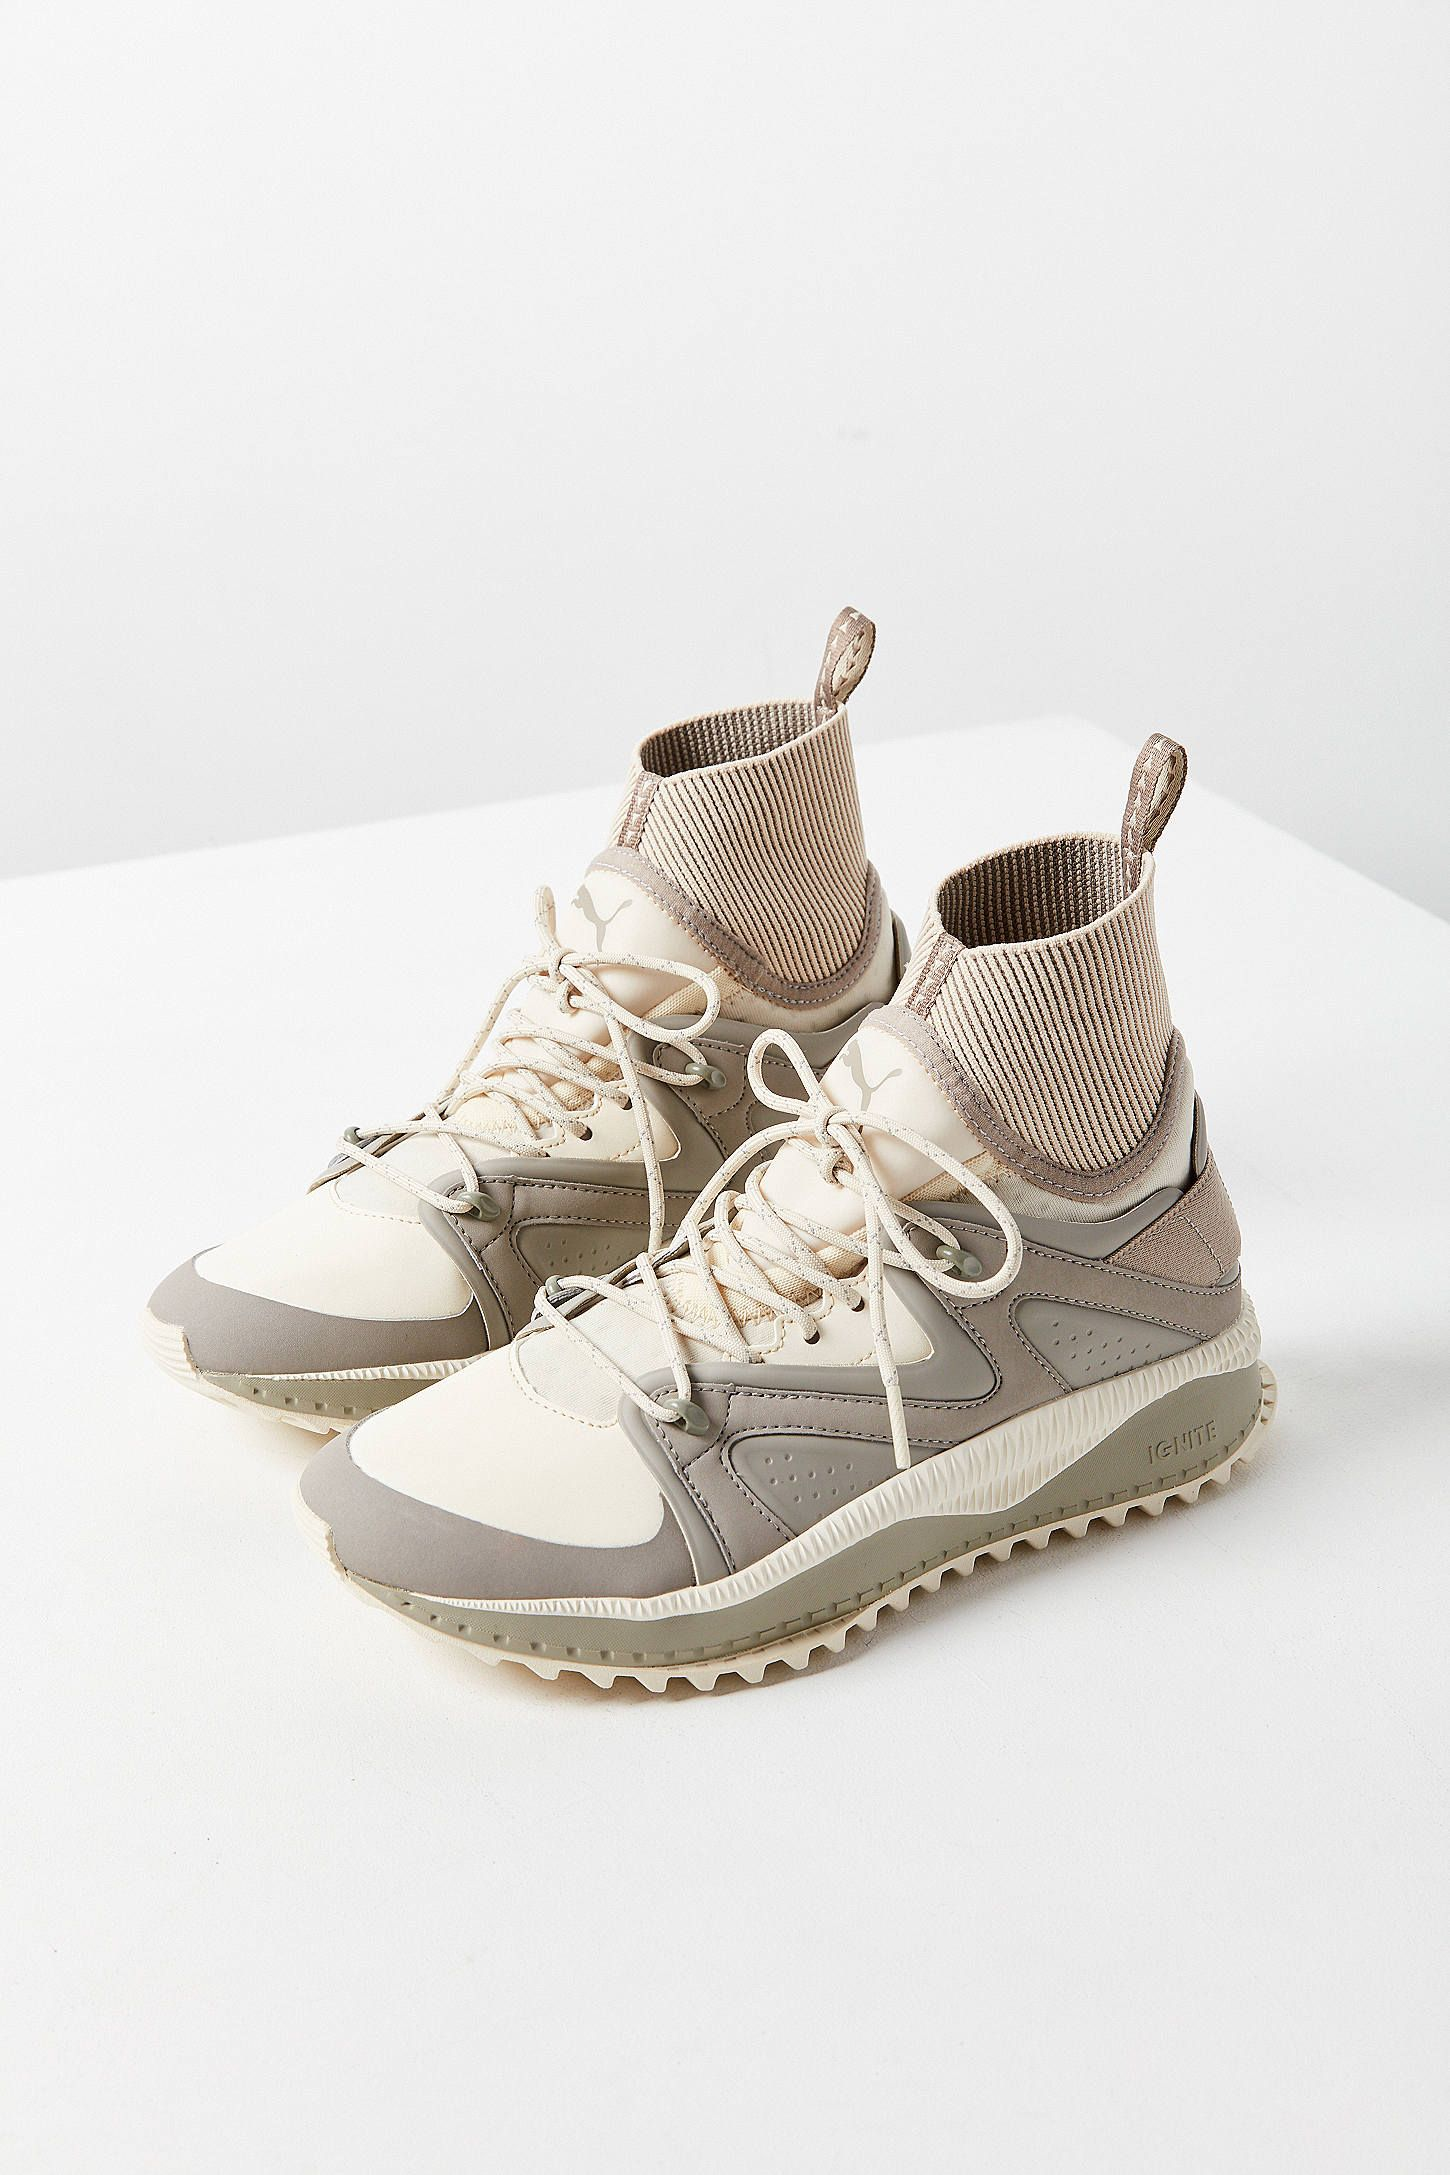 2de0ace28af7 Shop Puma Tsugi Kori Hi Training Sneakerboot at Urban Outfitters today. We  carry all the latest styles